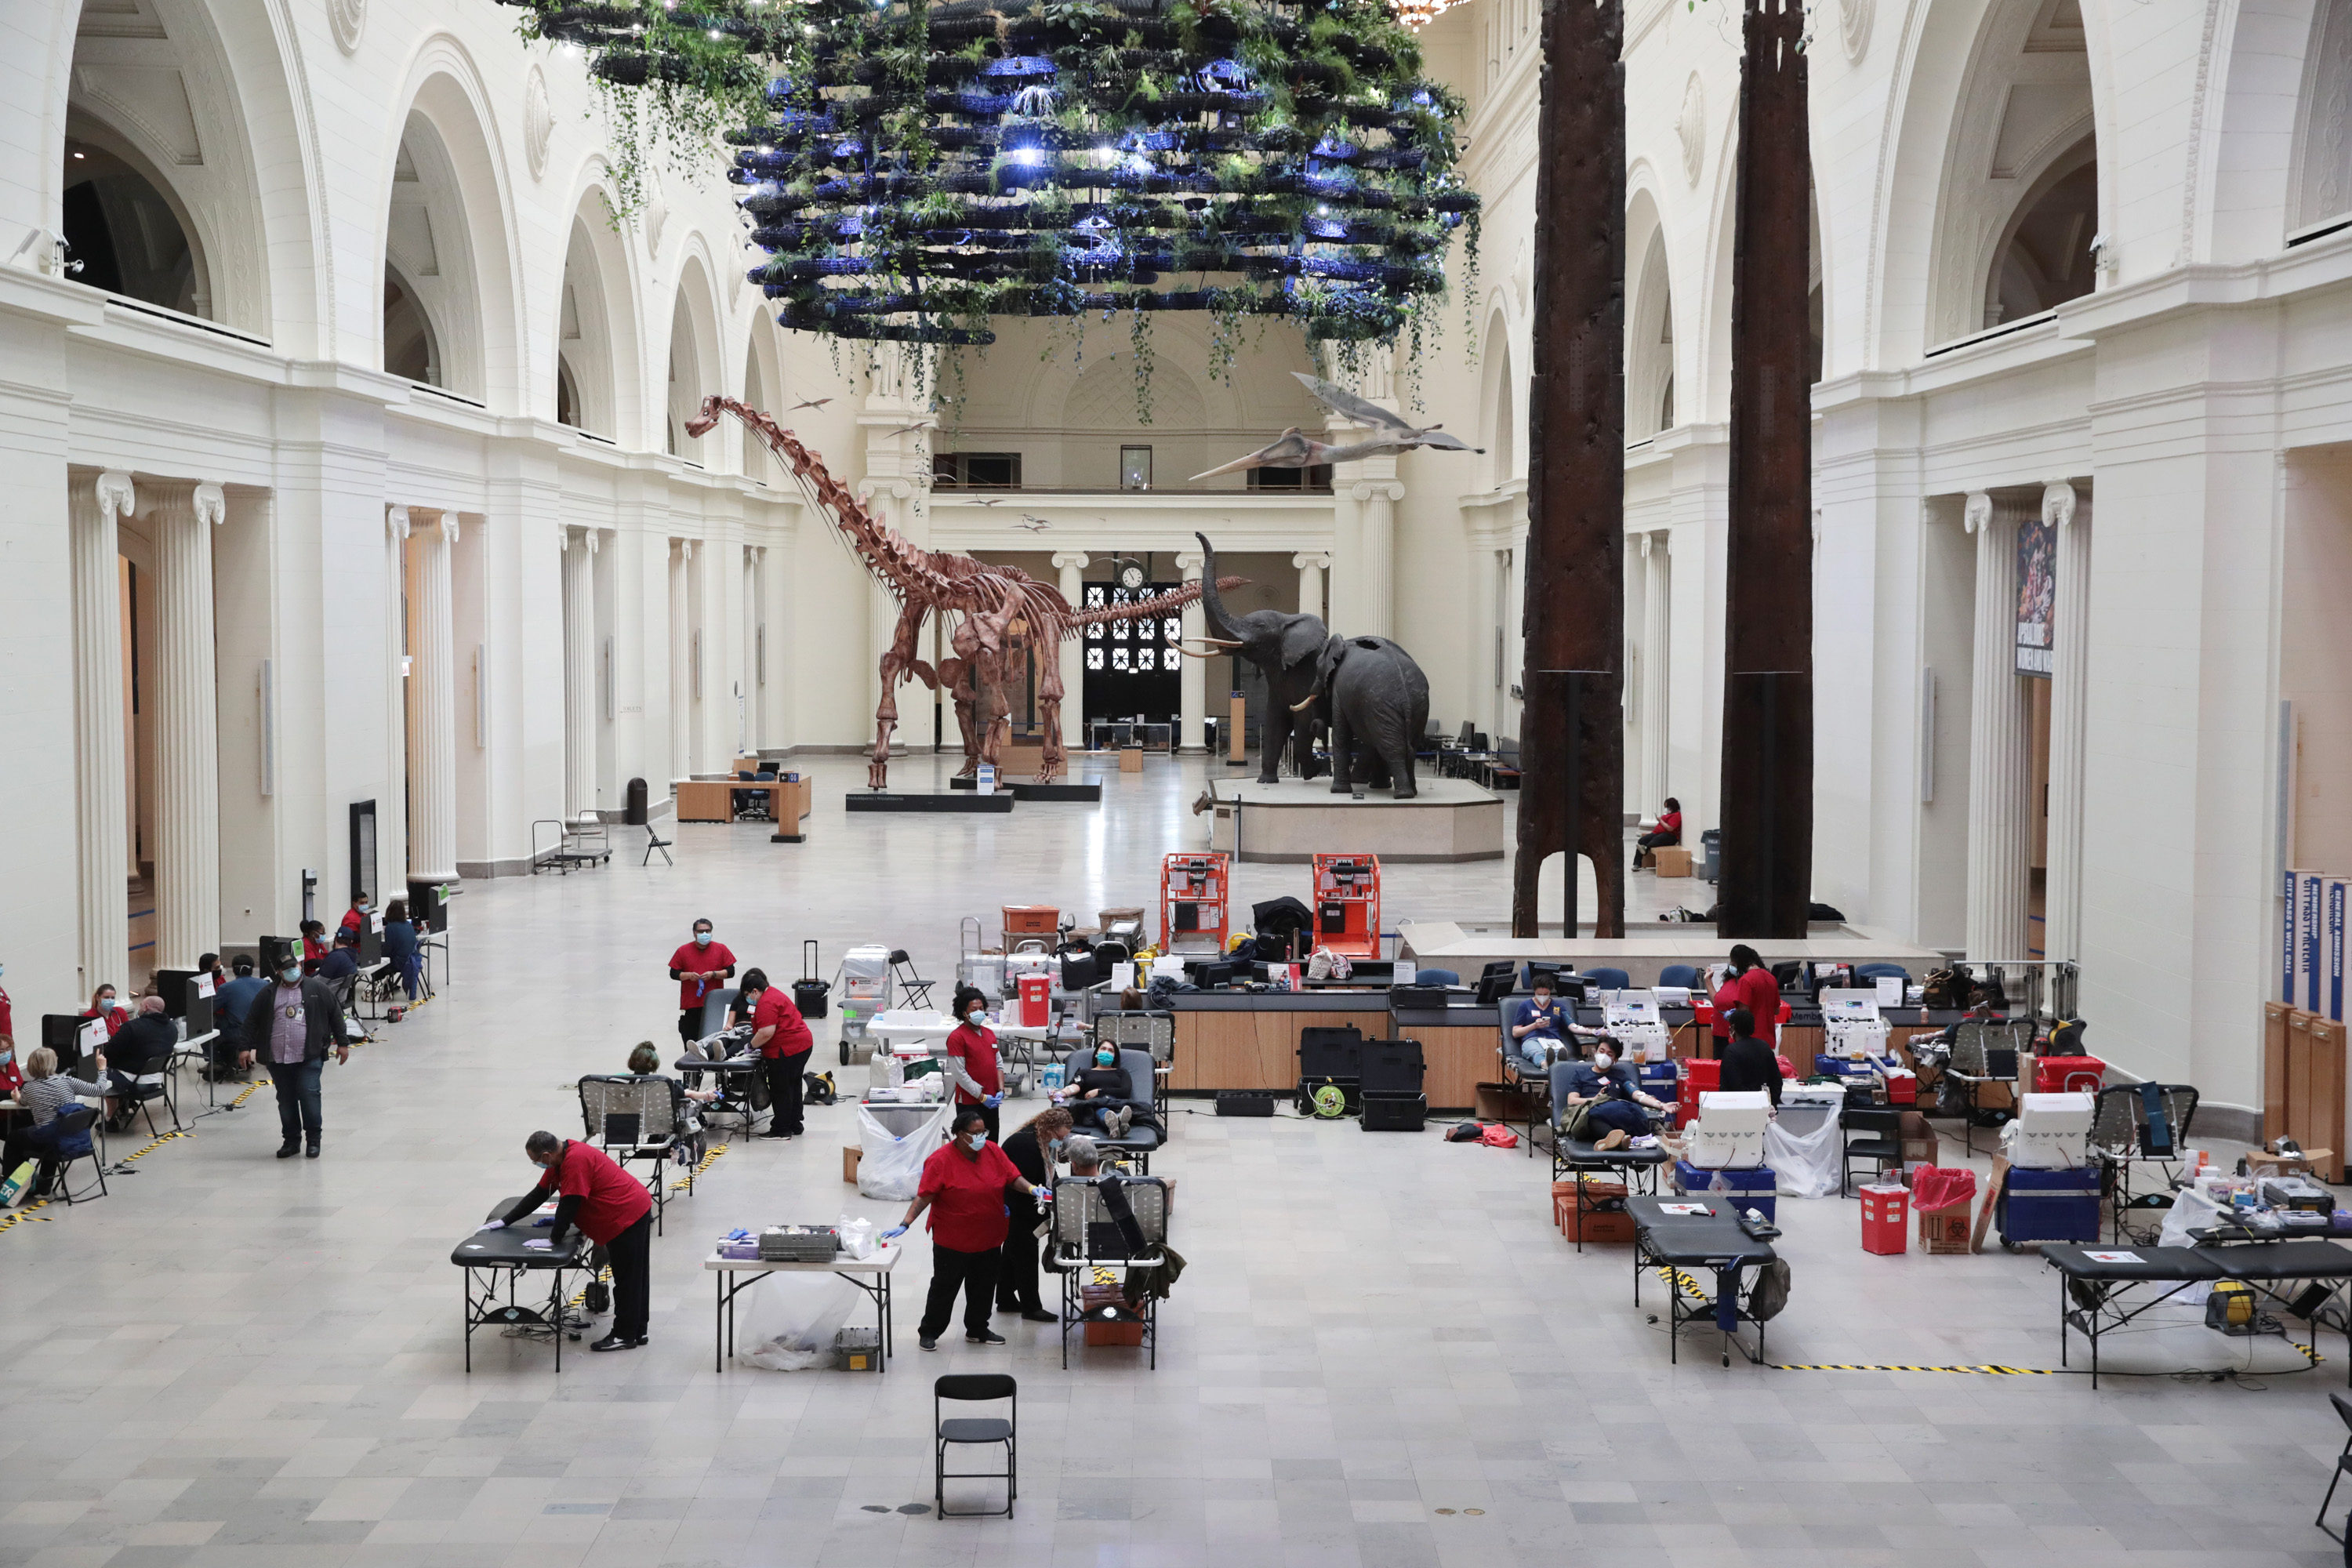 Chicago's Field Museum Of Natural History Hosts Blood Drive Amid COVID-19 Crisis